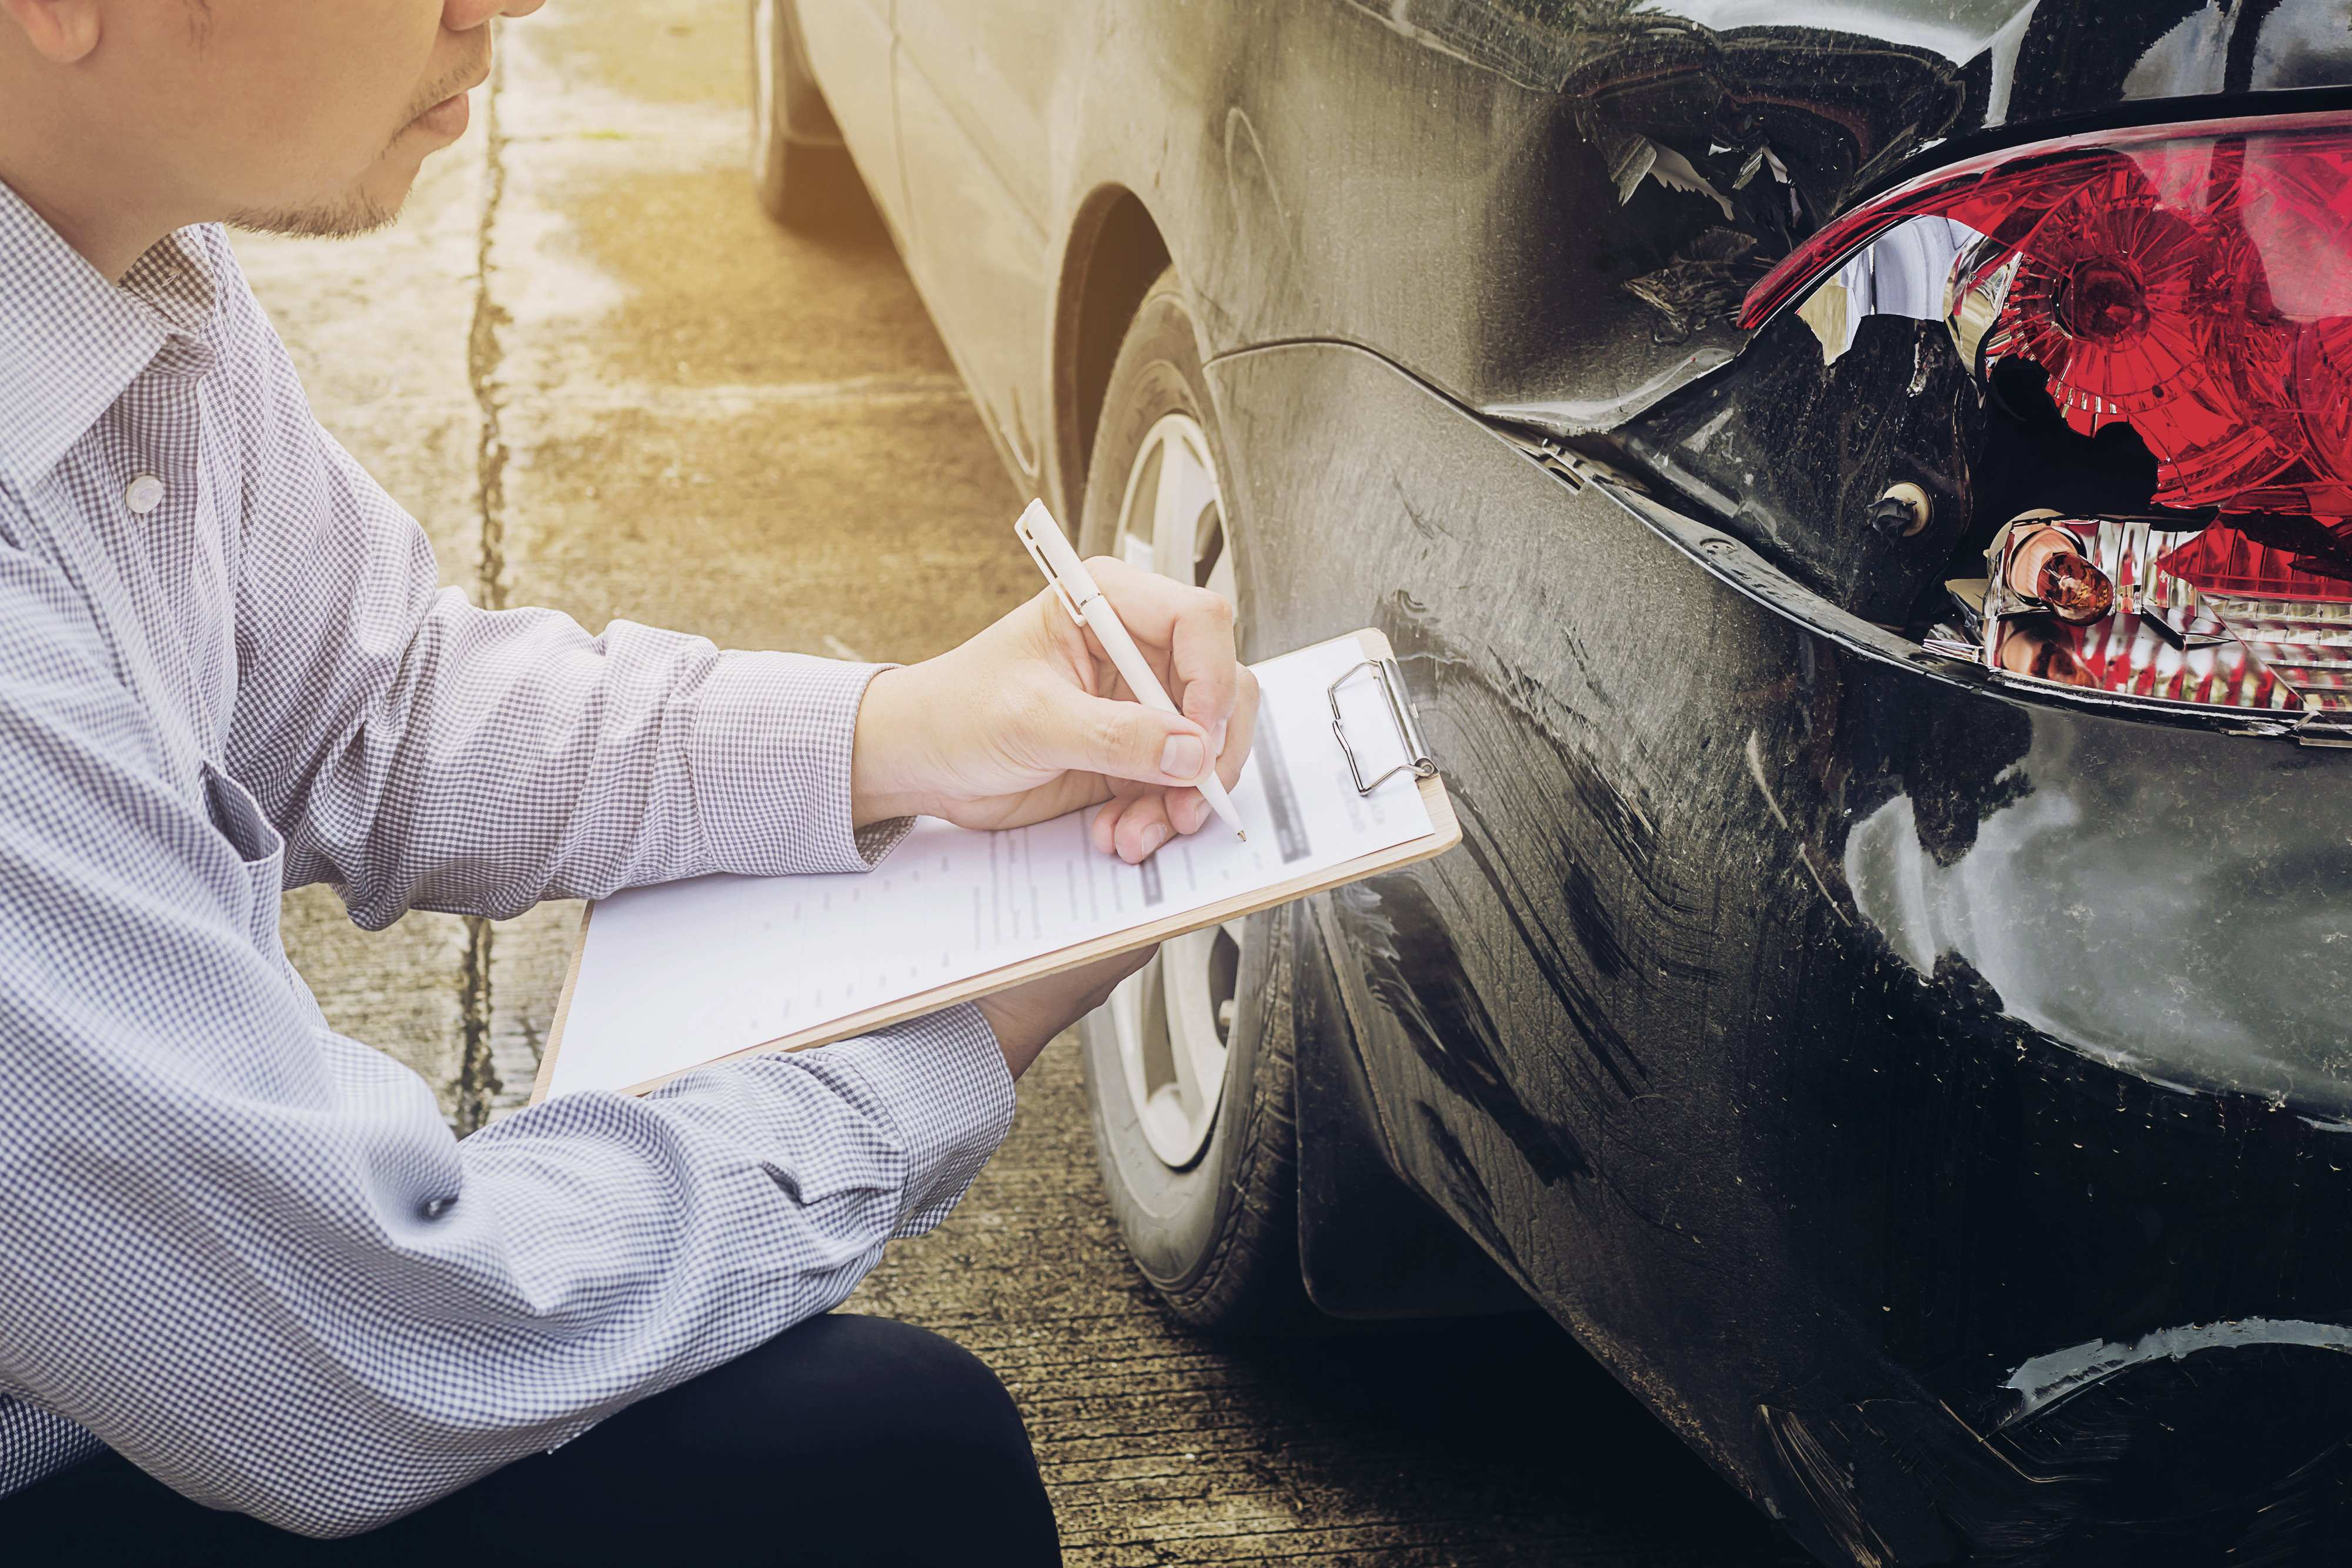 insurance-agent-working-car-accident-full-coverage-claim-process-content-image